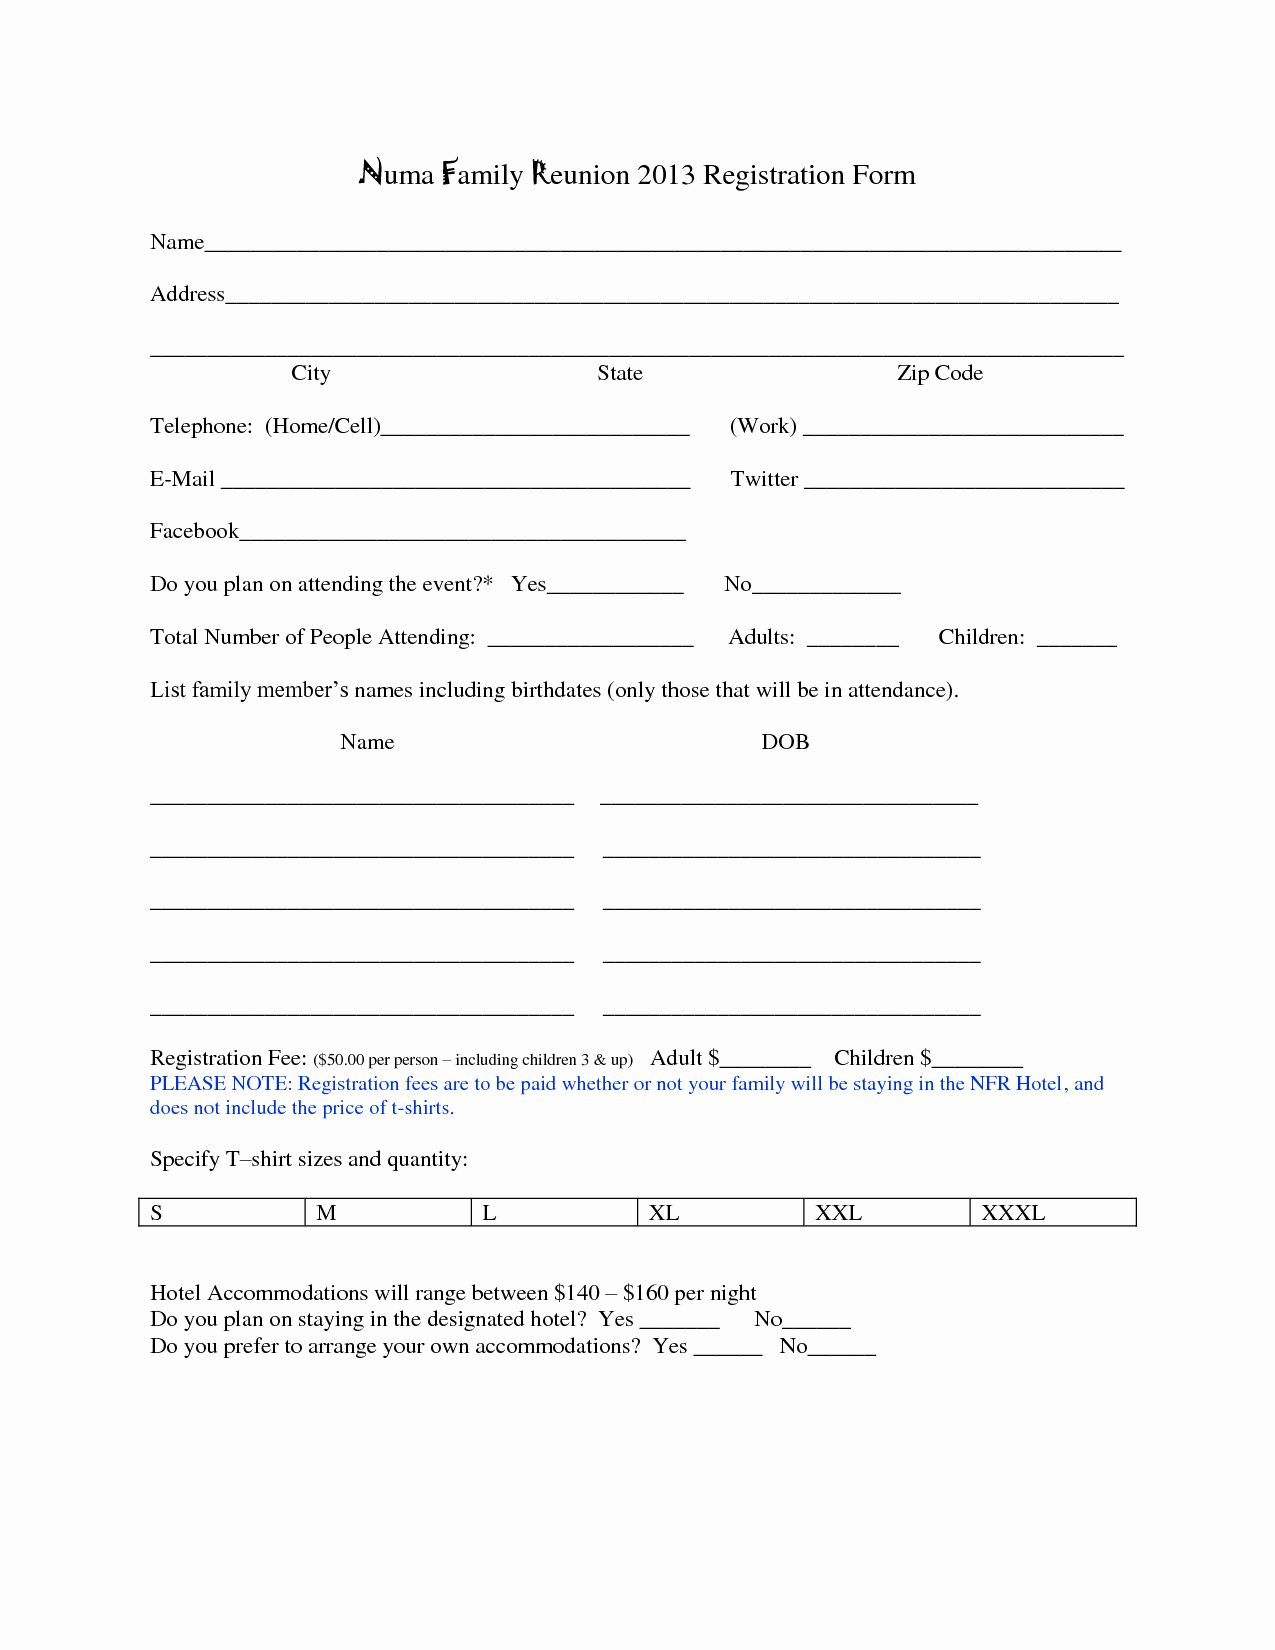 Event Registration form Template Word Inspirational event Registration form Template Word Bamboodownunder